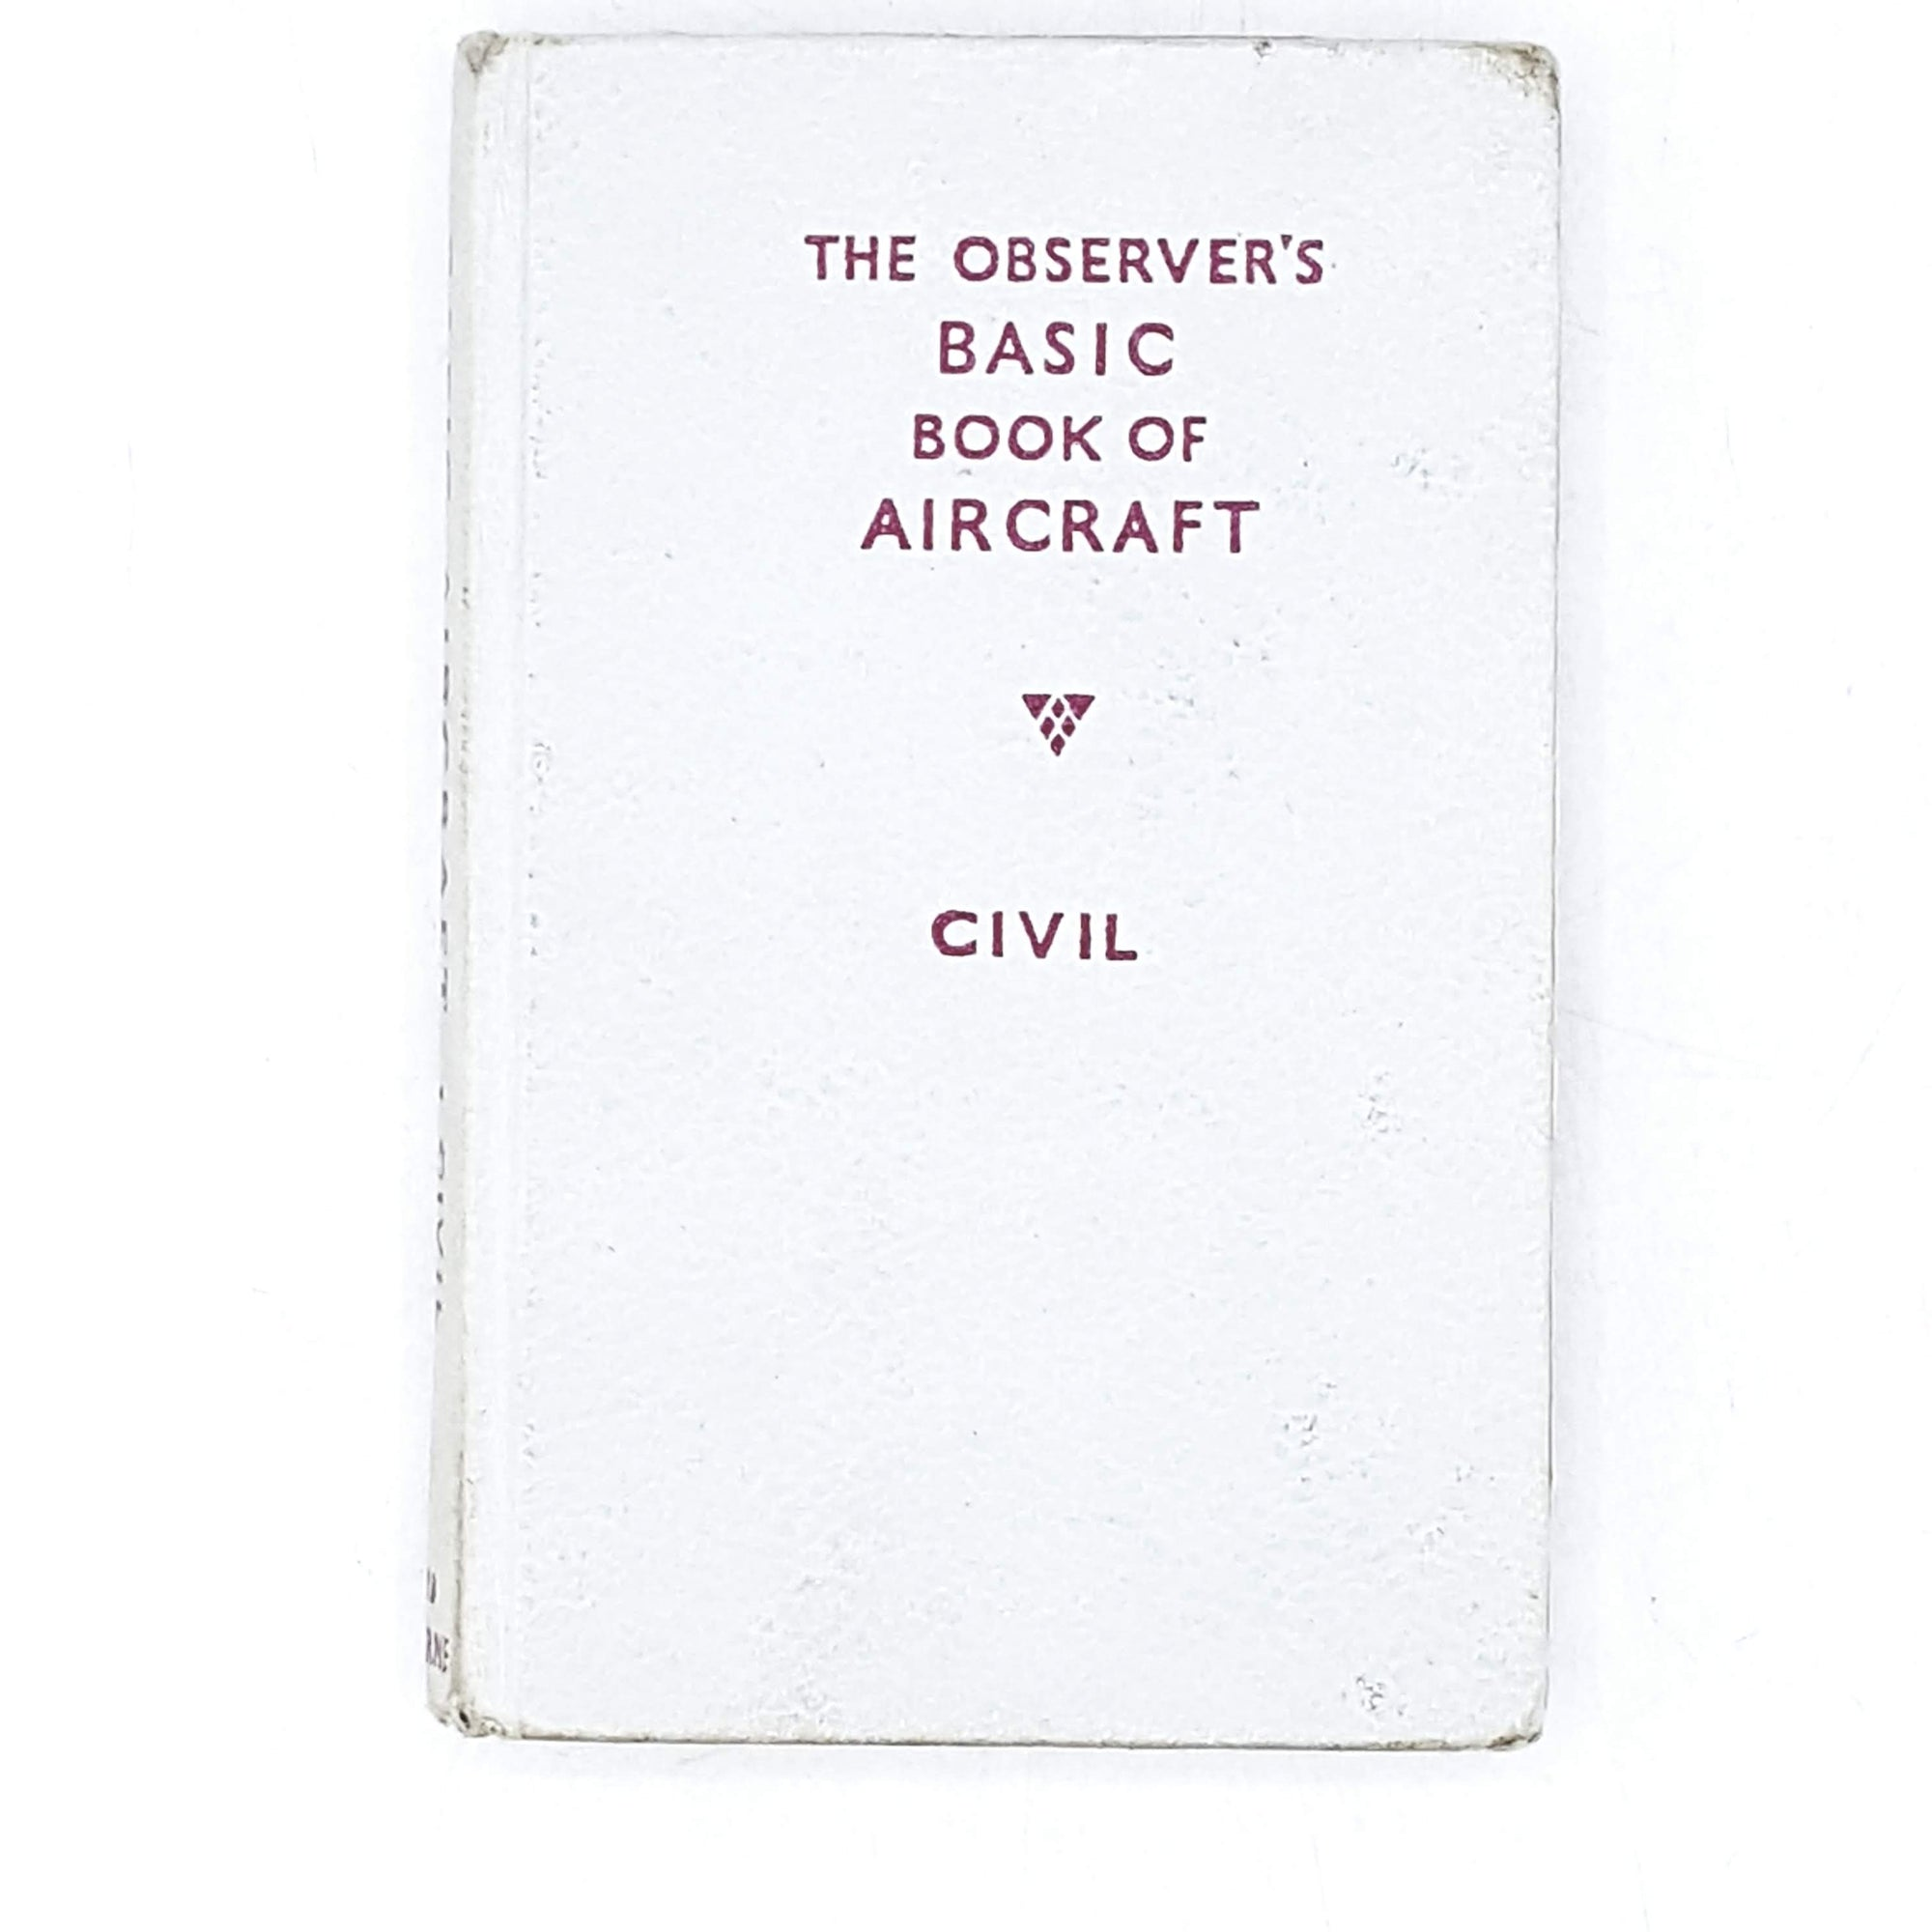 The Observer's Basic Book of Aircraft: Civil by William Green 1967